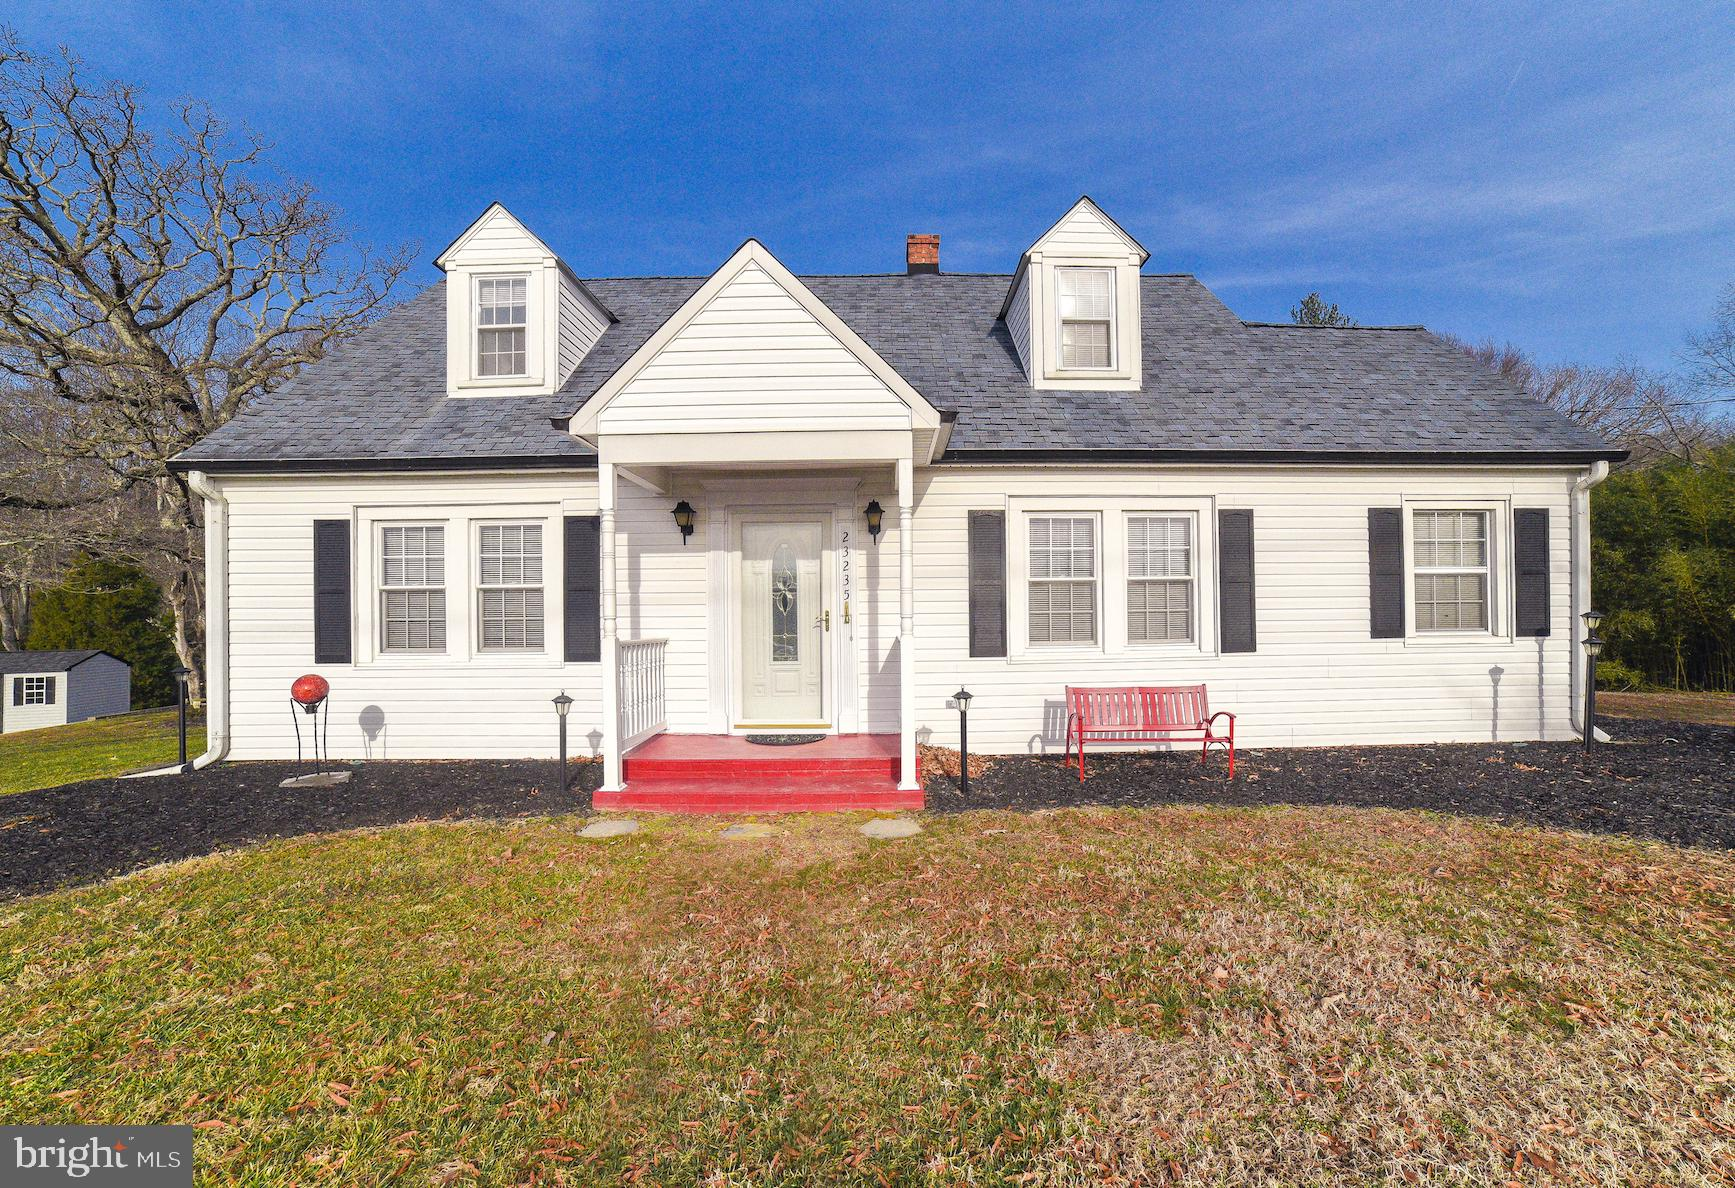 23235 COLTON POINT ROAD, AVENUE, MD 20609